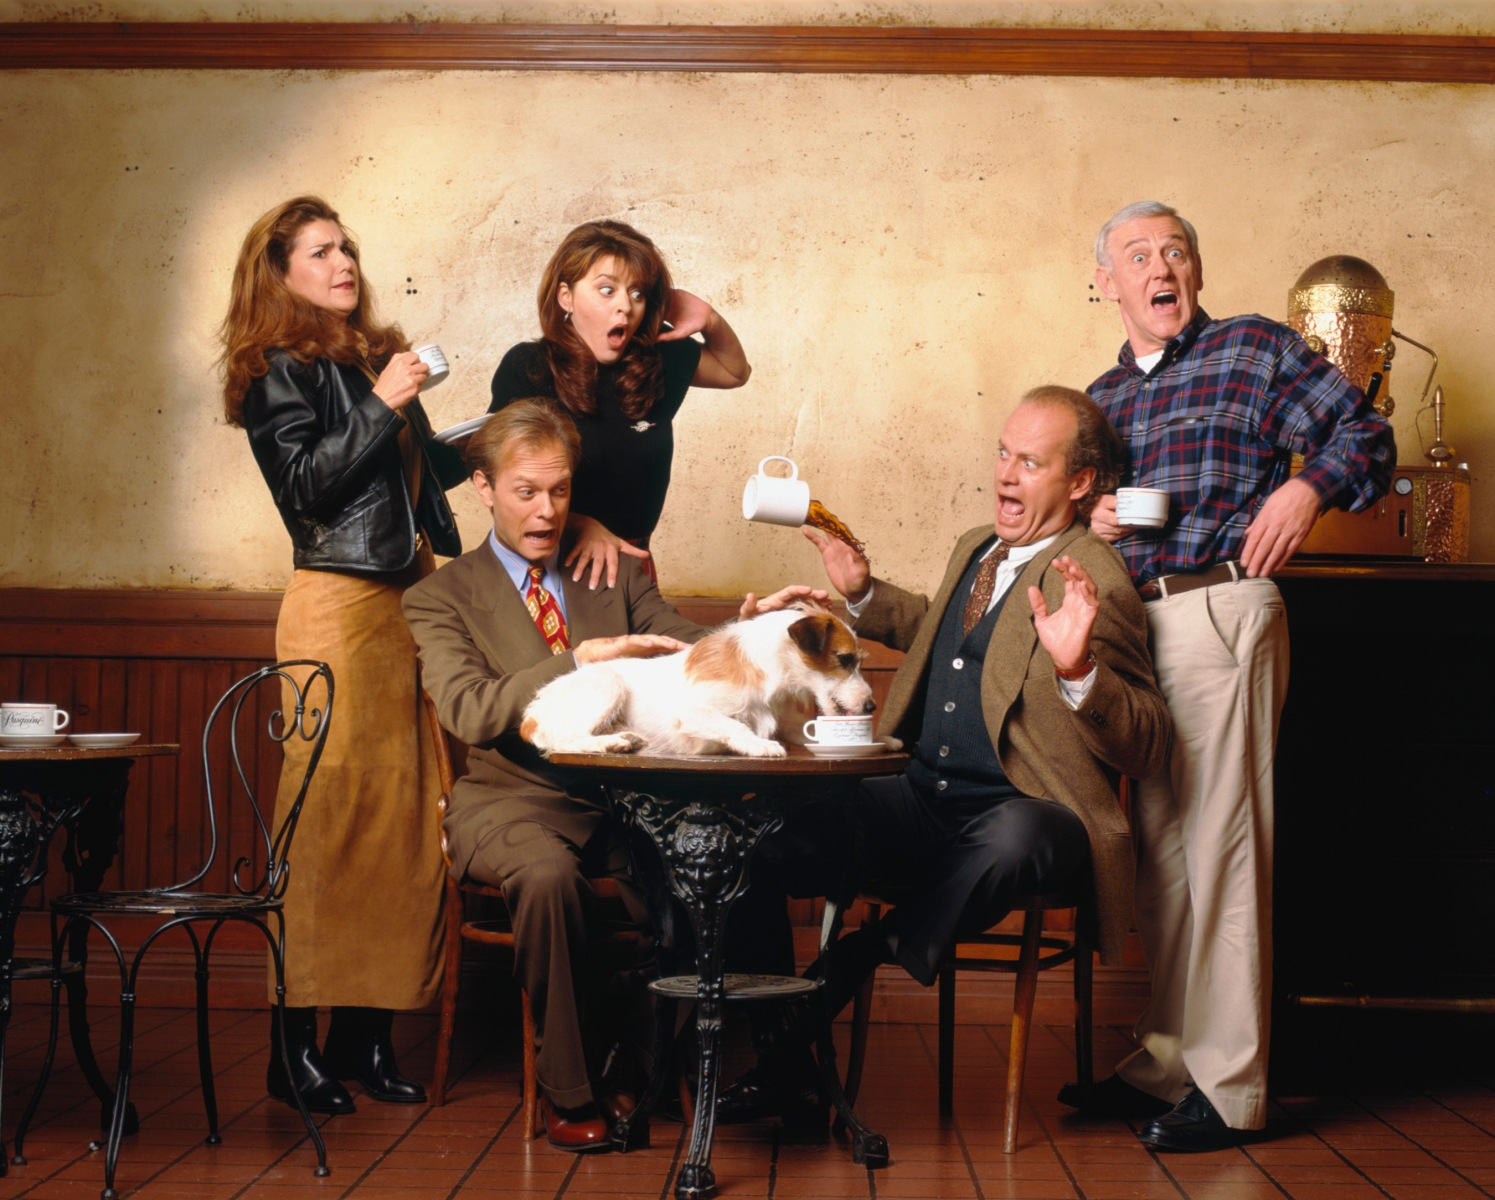 Peri Gilpin as Roz Doyle, David Hyde Pierce as Dr. Niles Crane, Jane Leeves as Daphne Moon, Moose as Eddie, Kelsey Grammer as Dr. Frasier Crane, John Mahoney as Martin Crane    -- Photo by: Andrew Eccles/NBCU Photo Bank